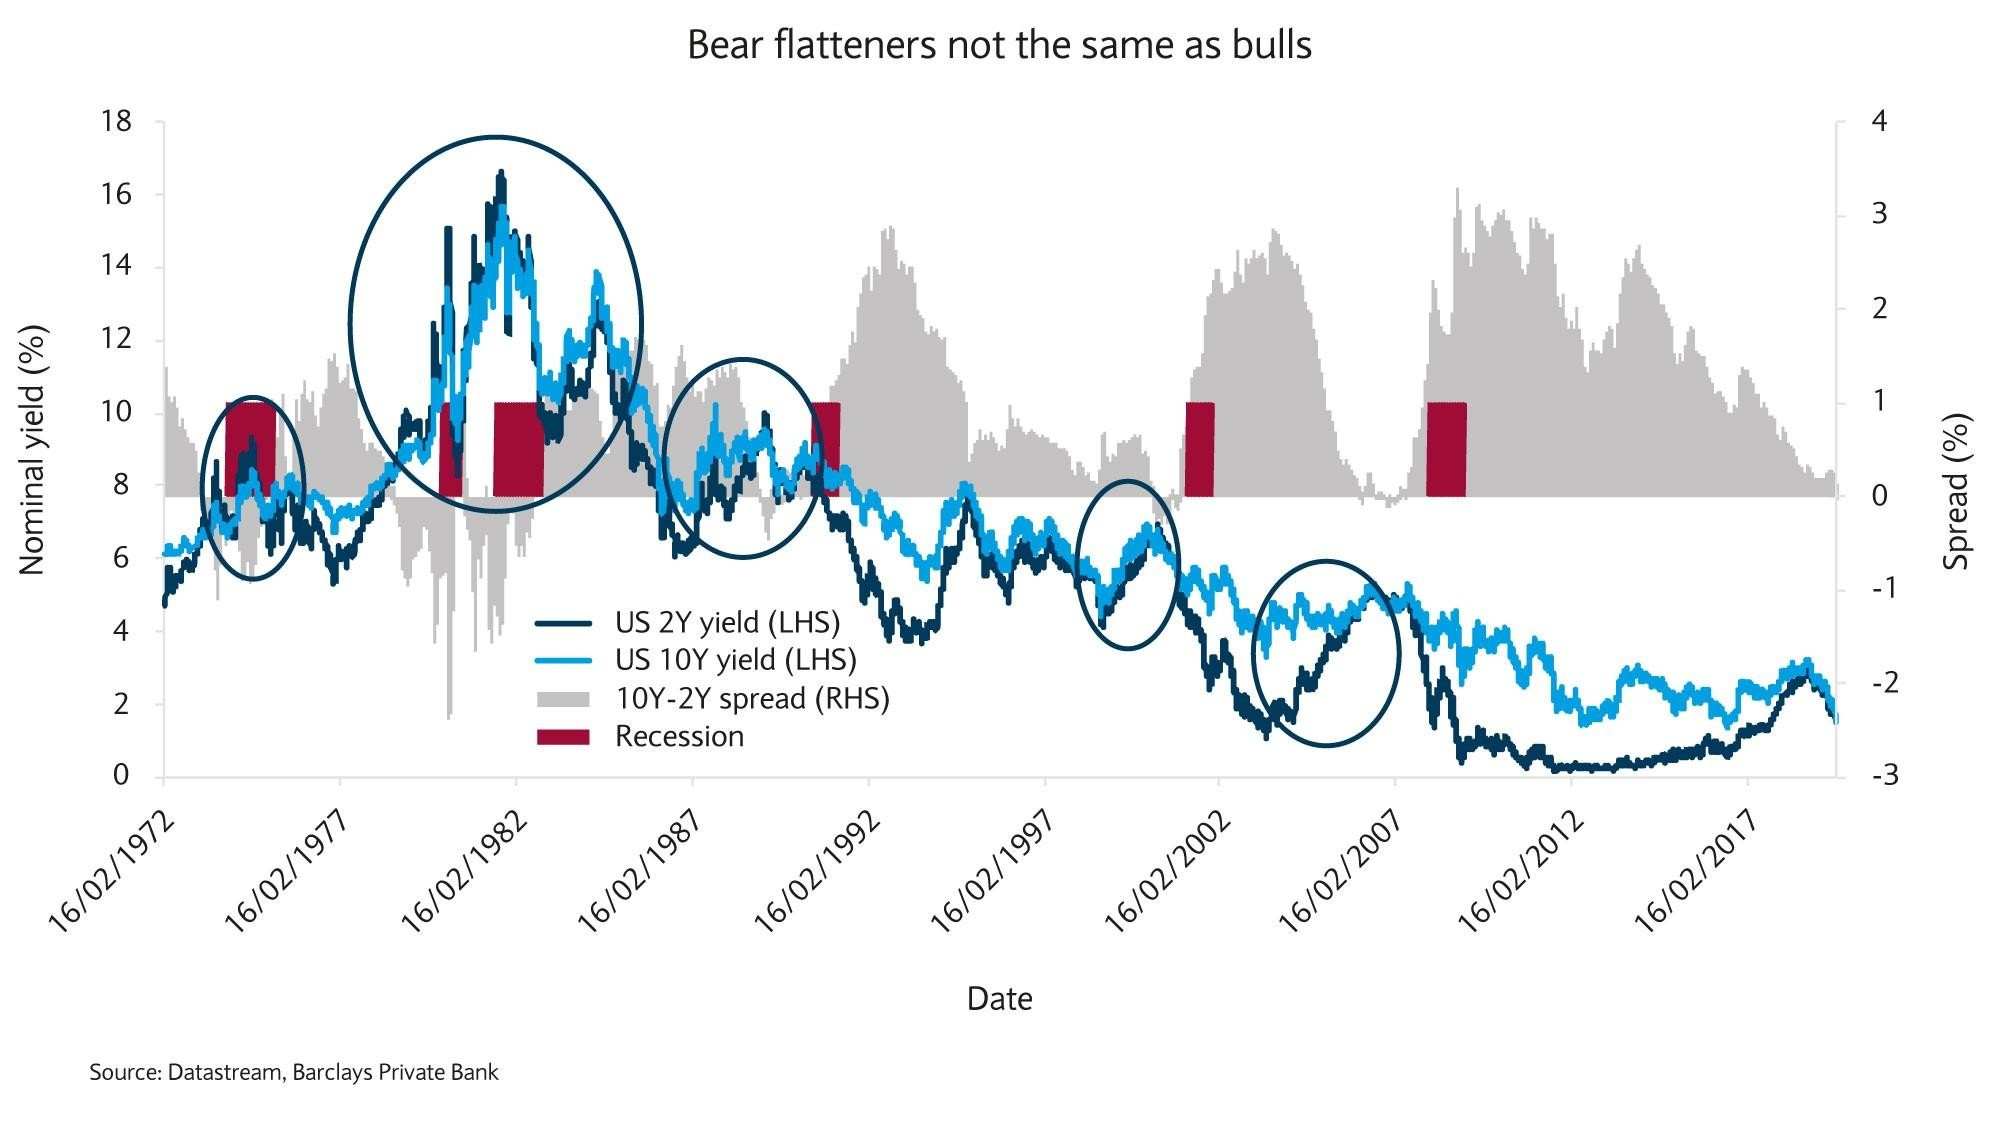 Bear flatteners not the same as bulls